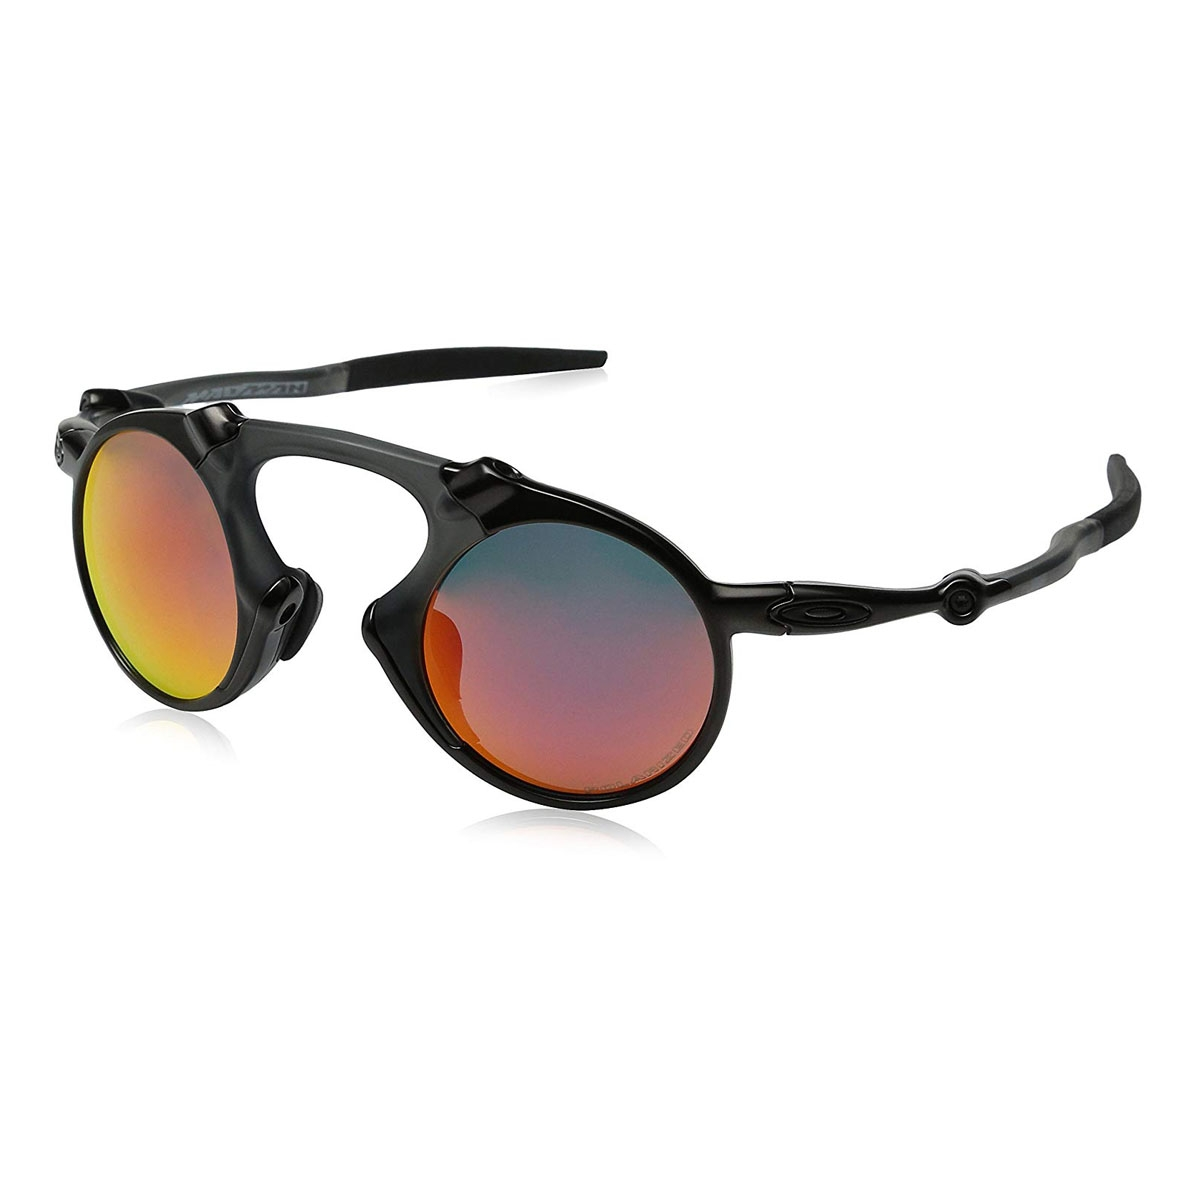 549528ae050 Image of Oakley Madman Polarized Sunglasses - Dark Carbon Frame Ruby  Iridium Polarized Lens